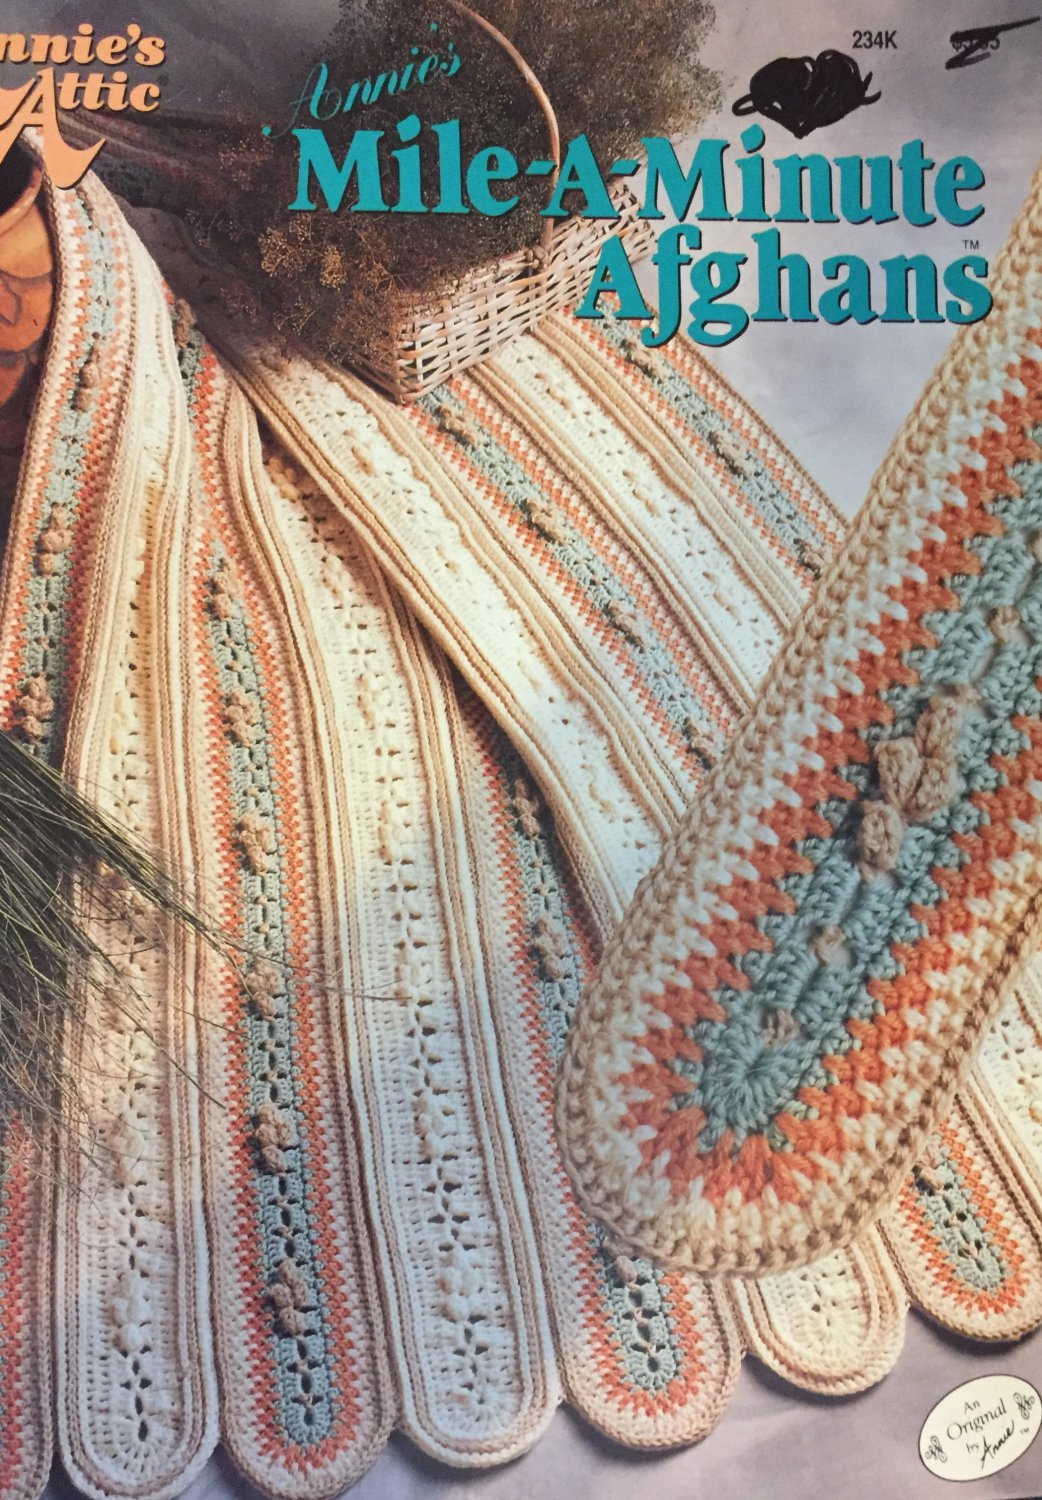 Annie S Attic Mile A Minute Afghans Crochet Pattern